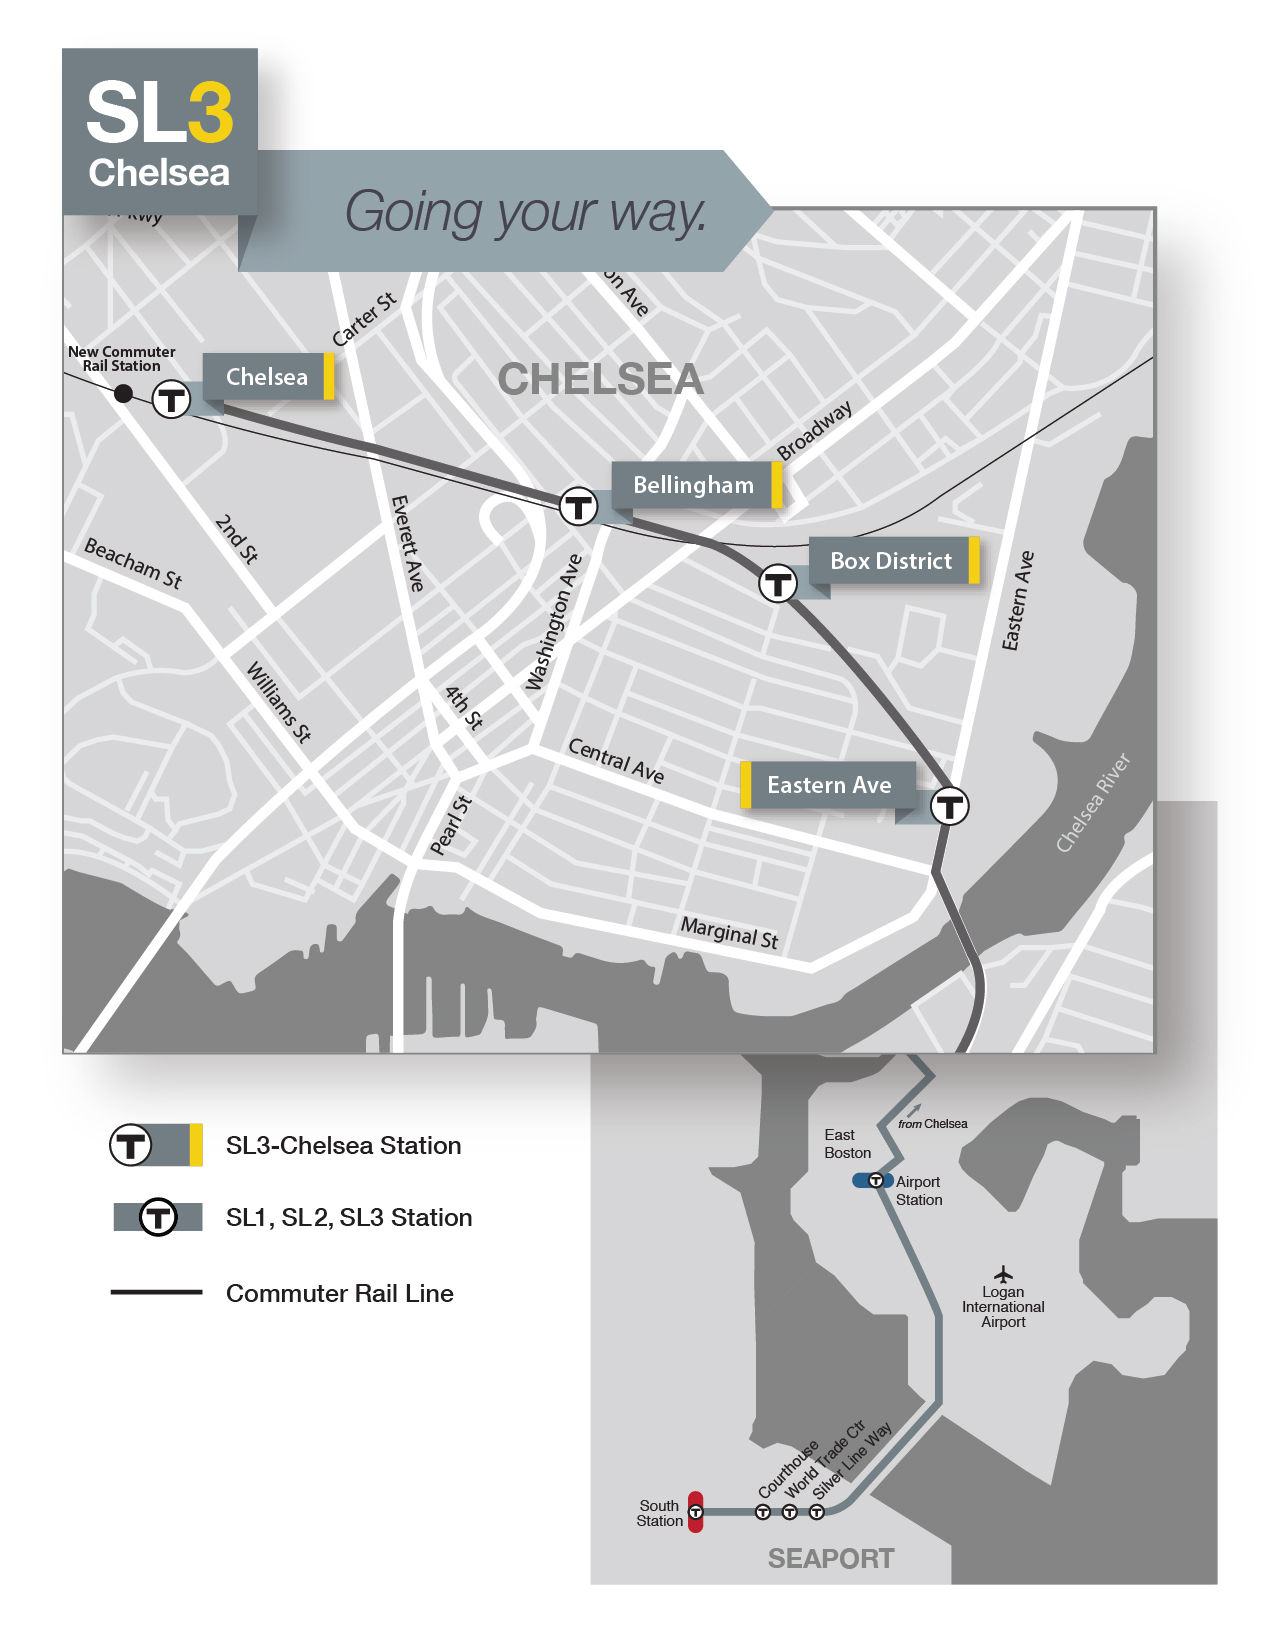 Stylized map of SL3 stops and its route from Chelsea to South Station